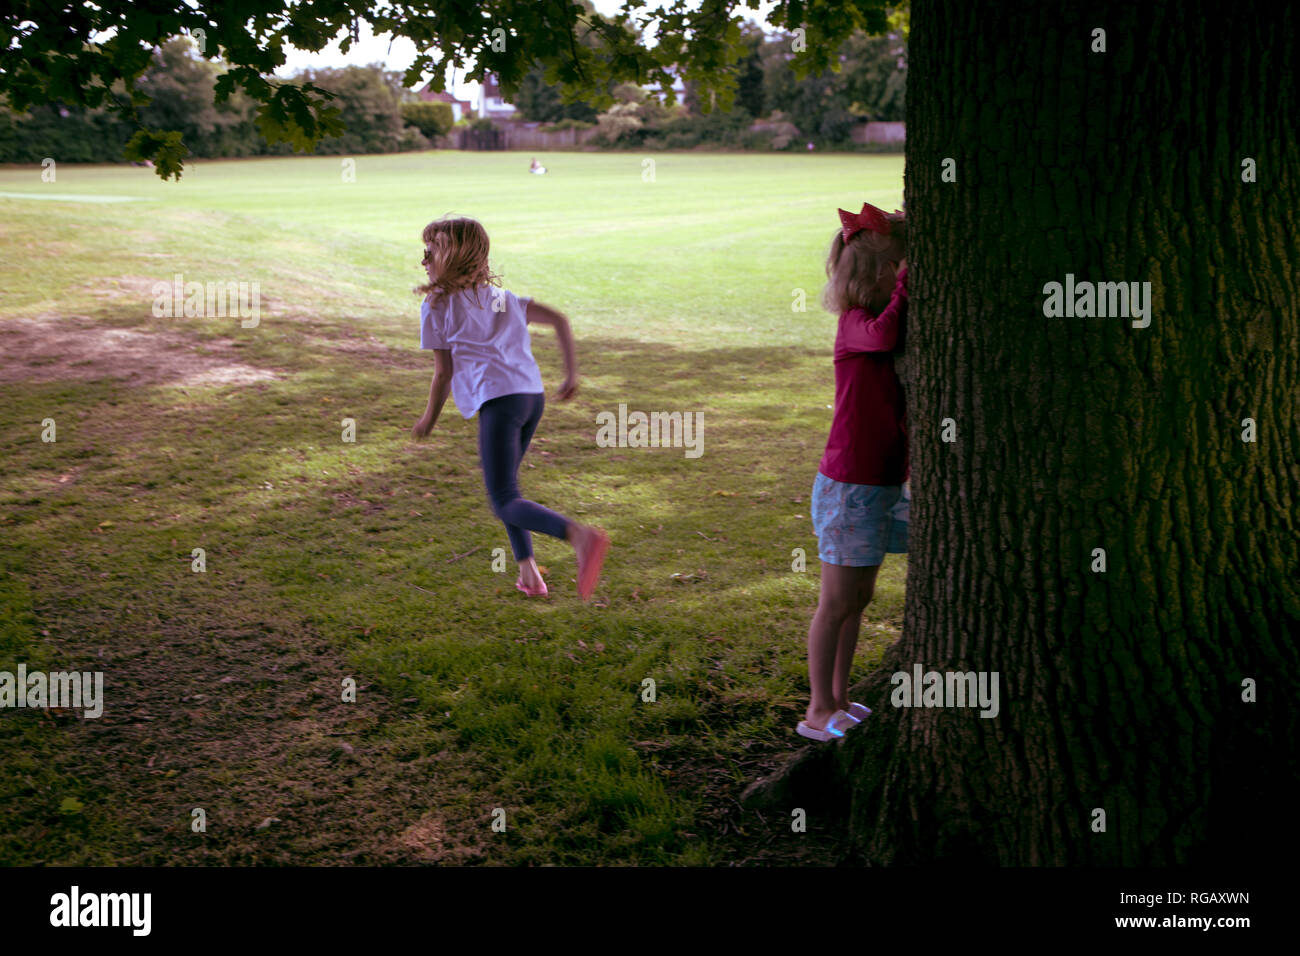 two young girls playing hide and seek in a park in Summer Stock Photo